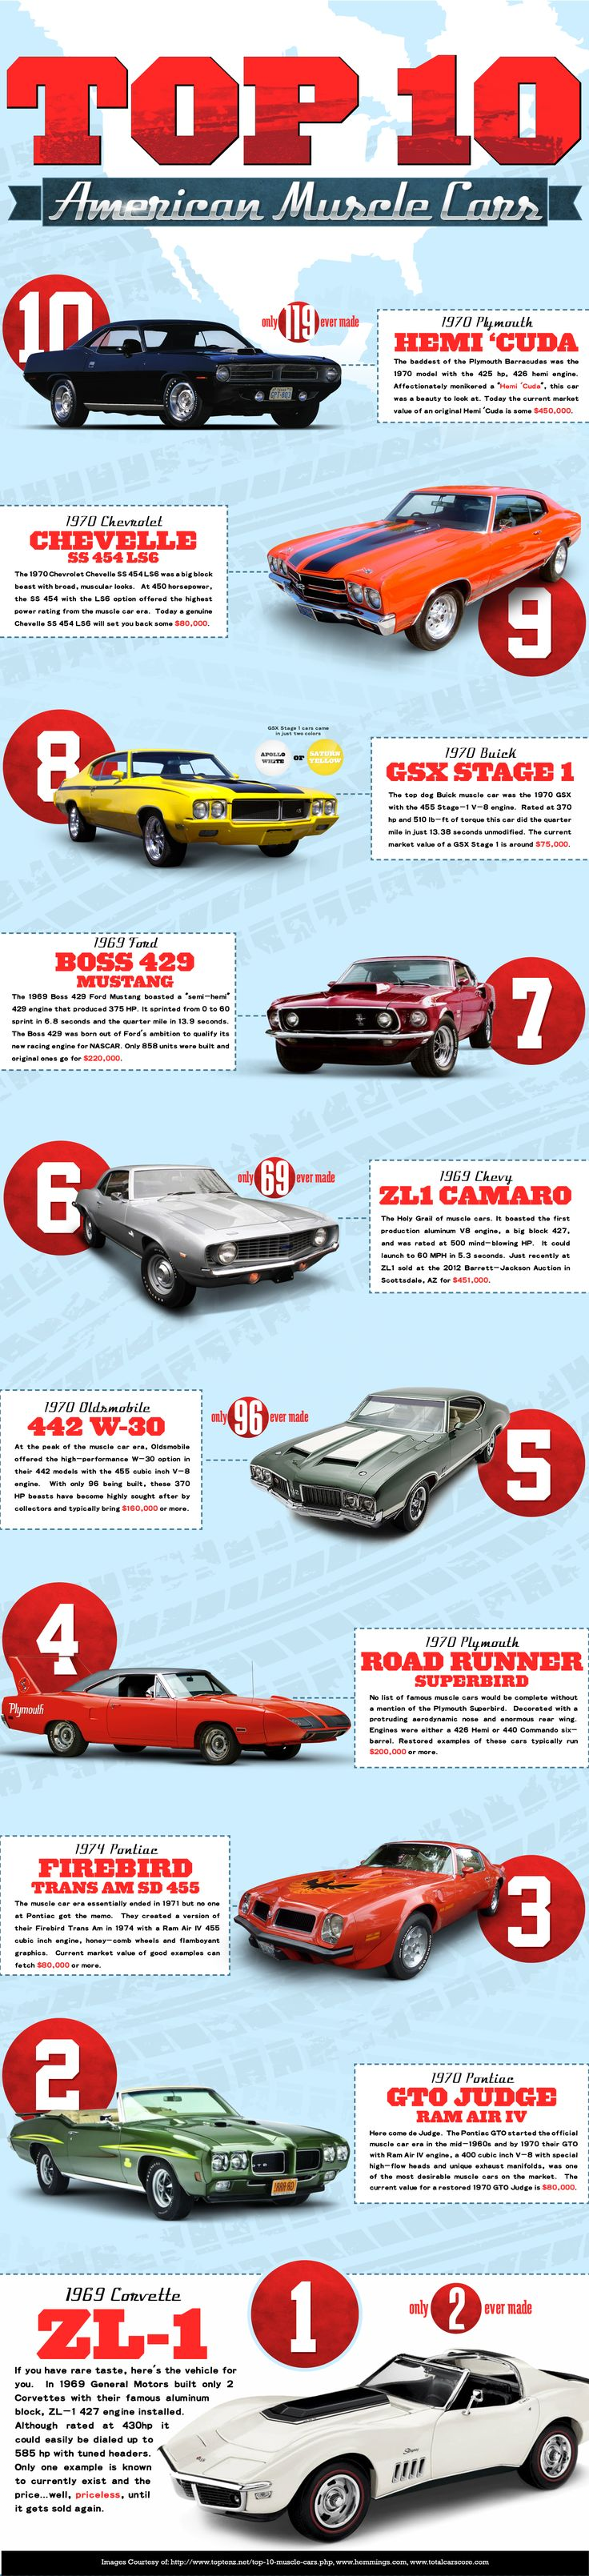 Best 25+ Classic muscle cars ideas on Pinterest | Muscle cars ...